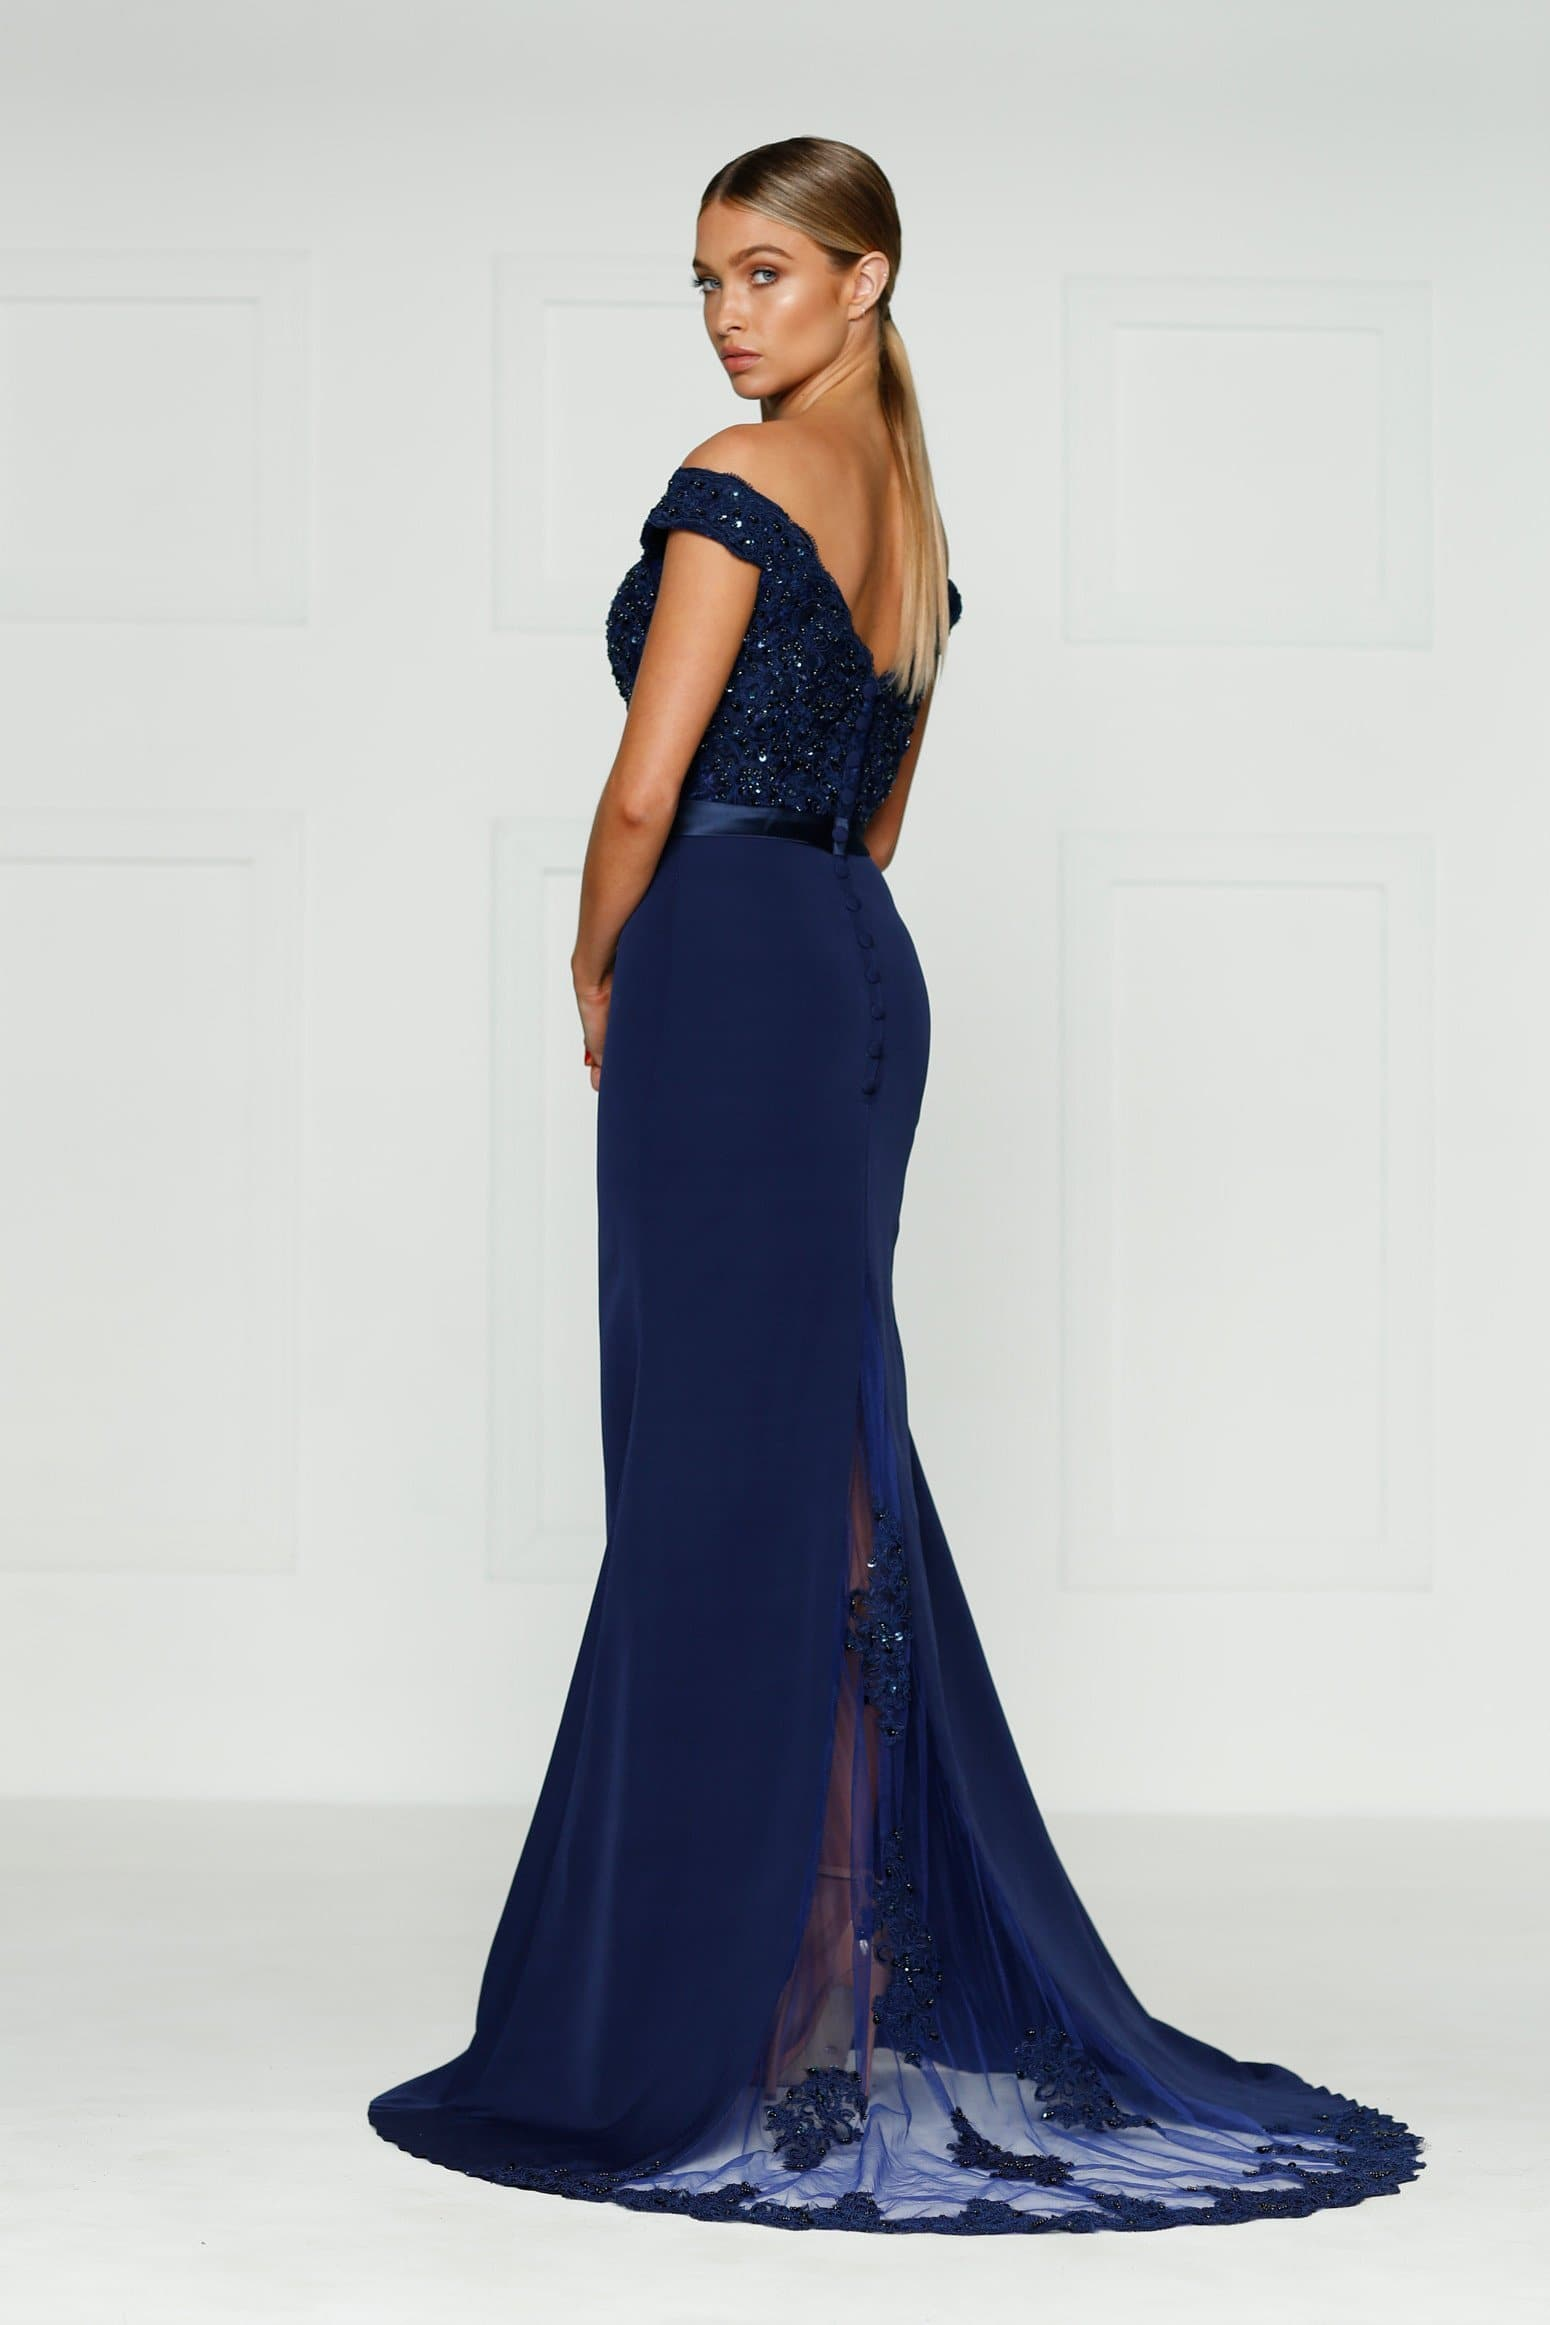 Sandy Formal Dress - Navy Lace Off-Shoulder Mermaid Gown